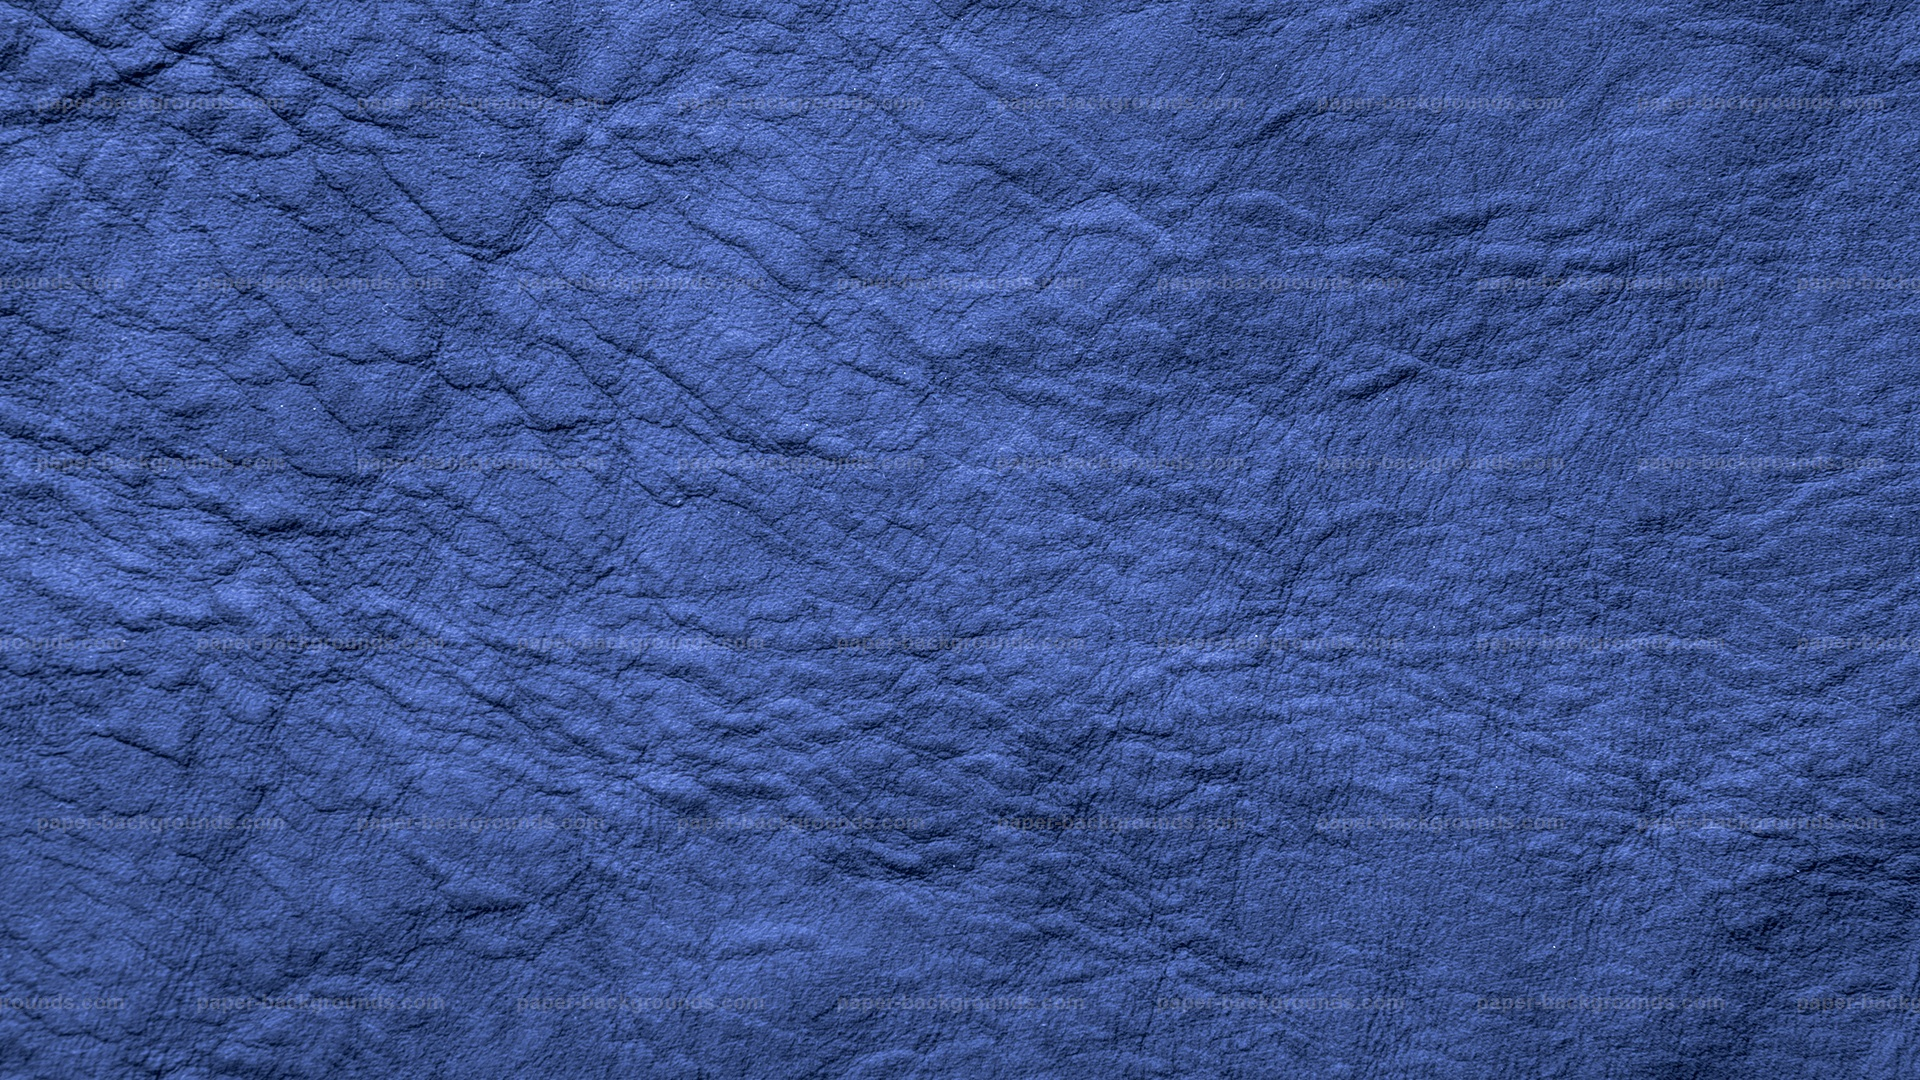 blue wrinkled paper texture - photo #17